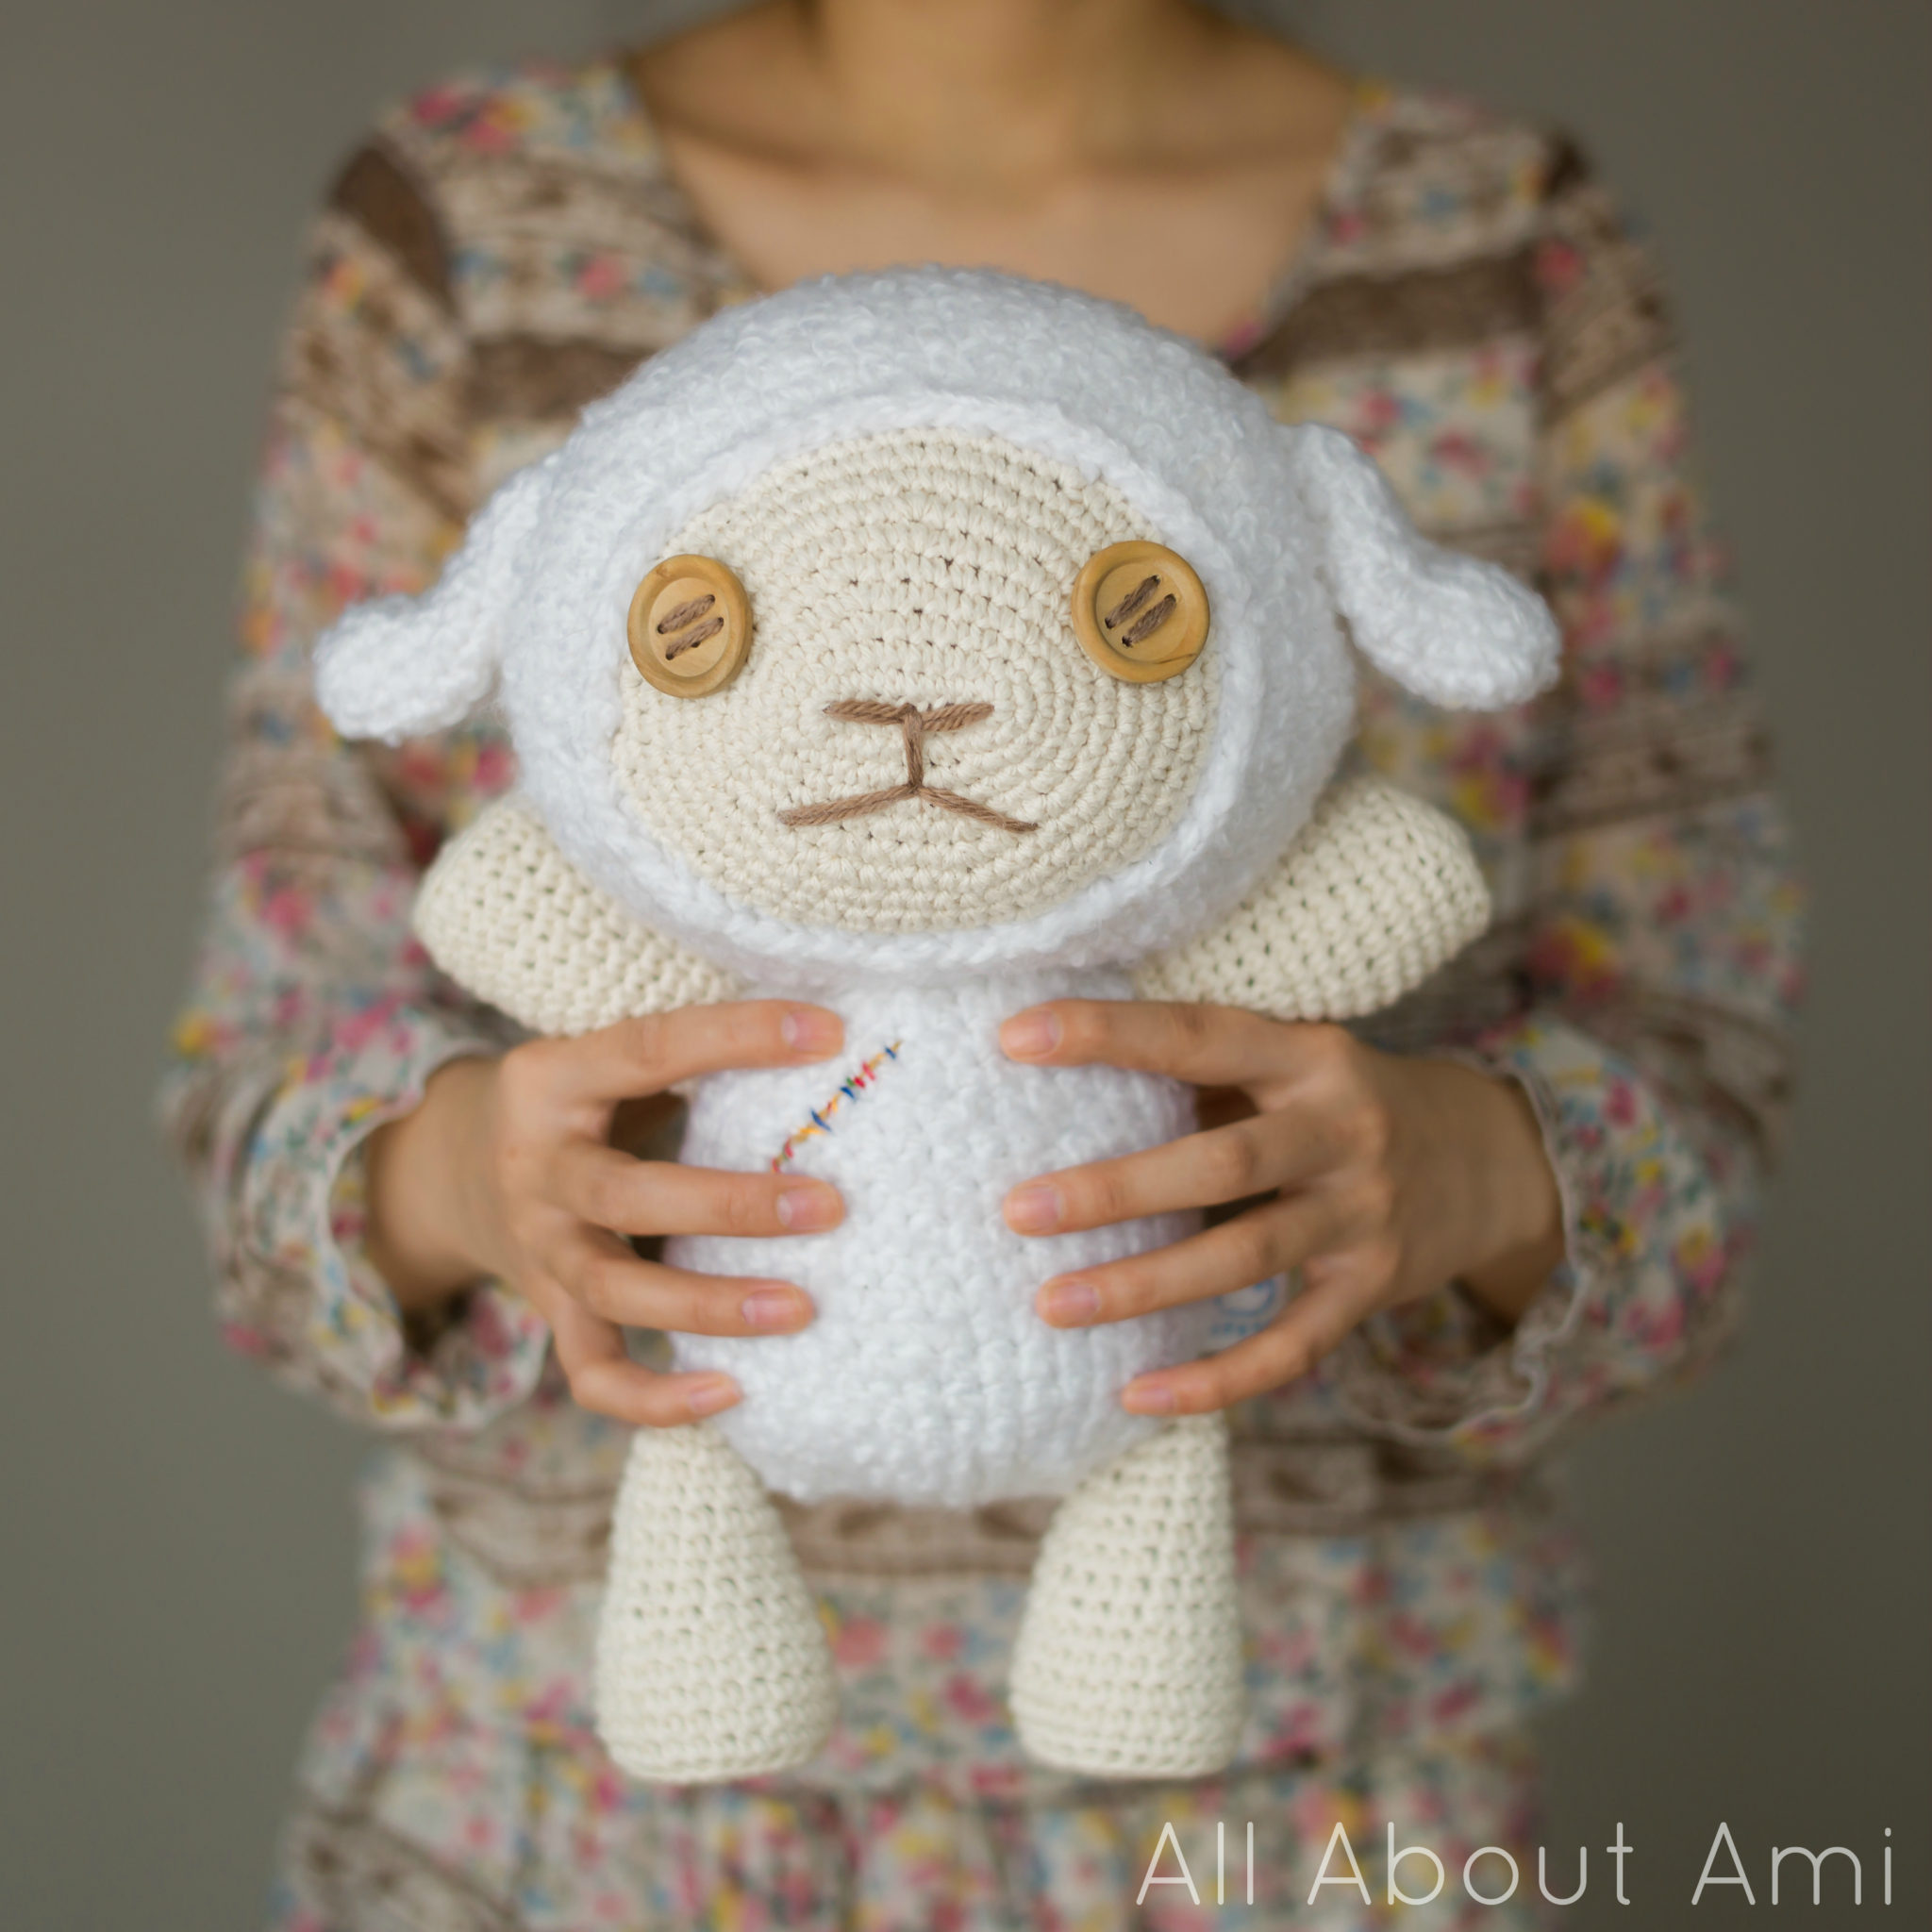 Pattern chinese new year sheeplamb all about ami this pattern is an original pattern by stephanie lau of all about ami february 2015 please do not claim this pattern as your own if you wish to share bankloansurffo Choice Image